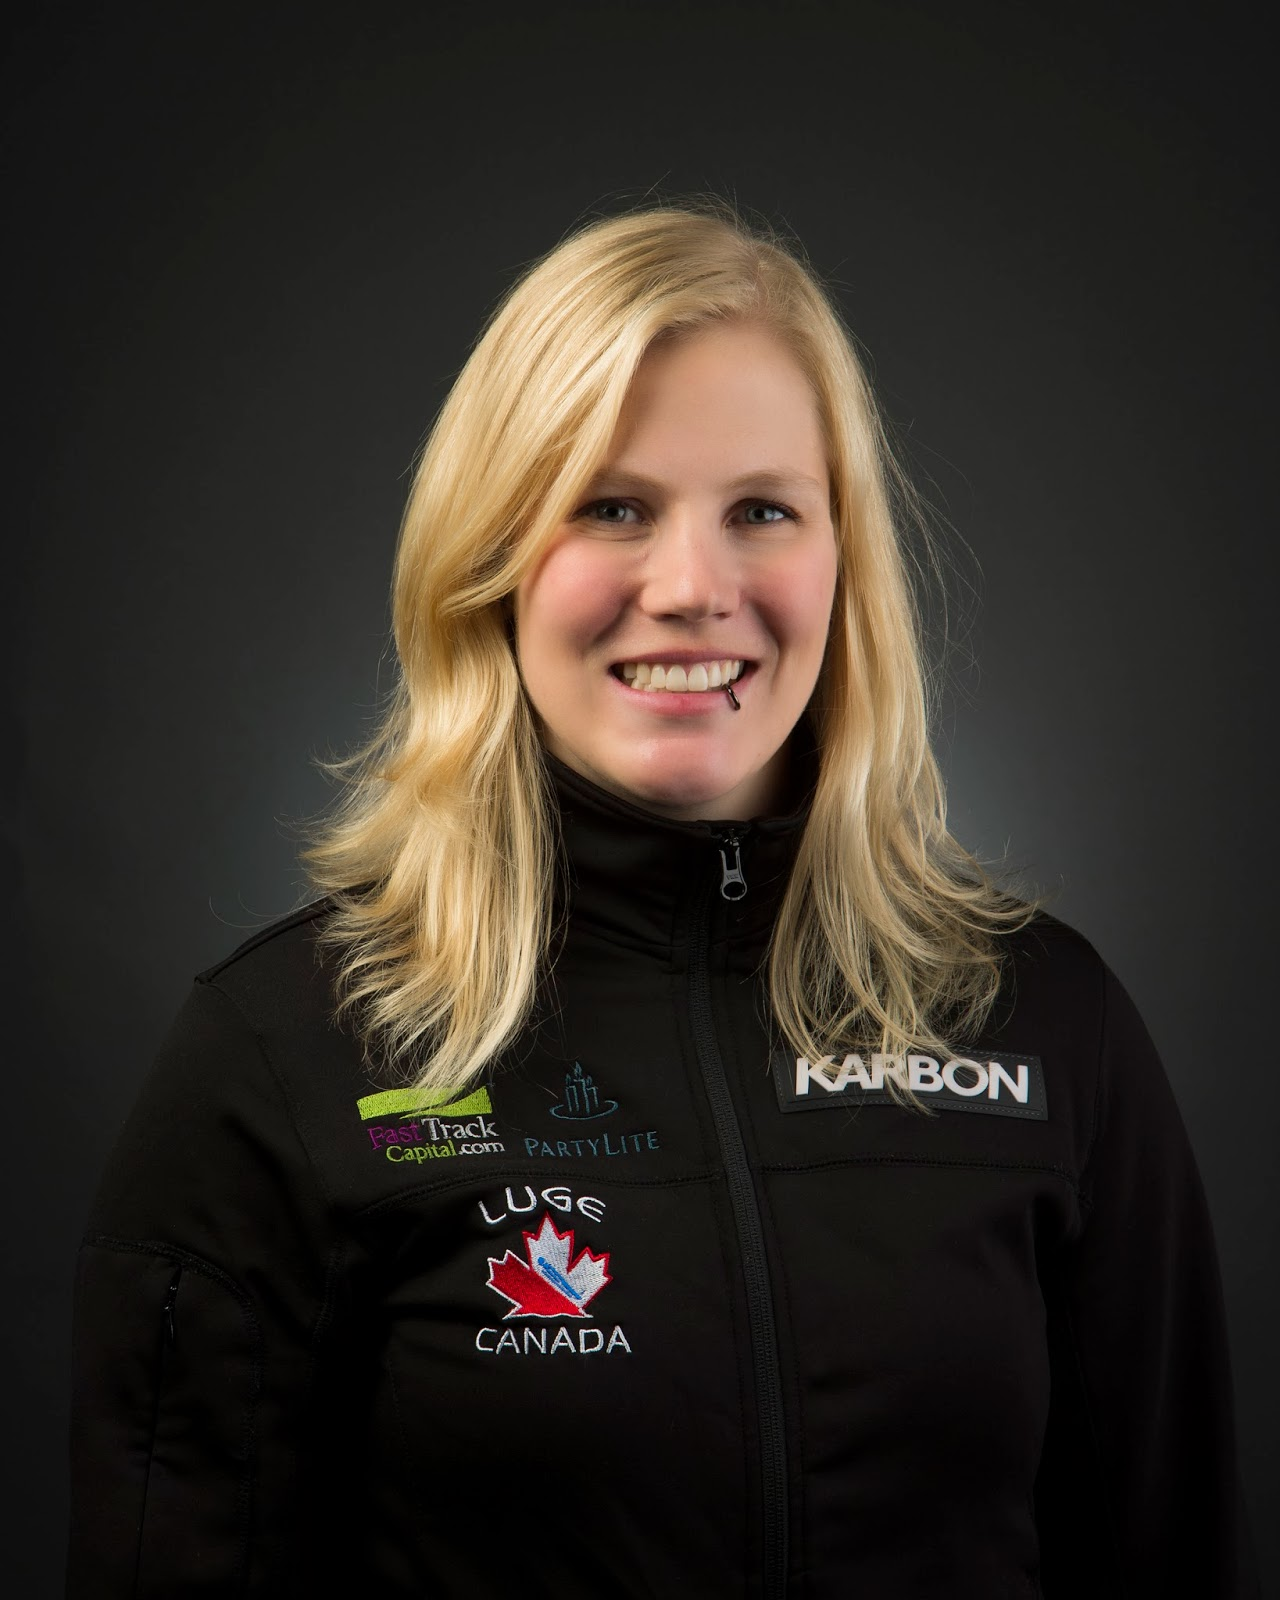 Alex Gough And The Canadian Luge Team Are Looking To Shake Things Up At The Xxii Olympic Winter Games Back In  Alex Ended A  Race Winning Streak By